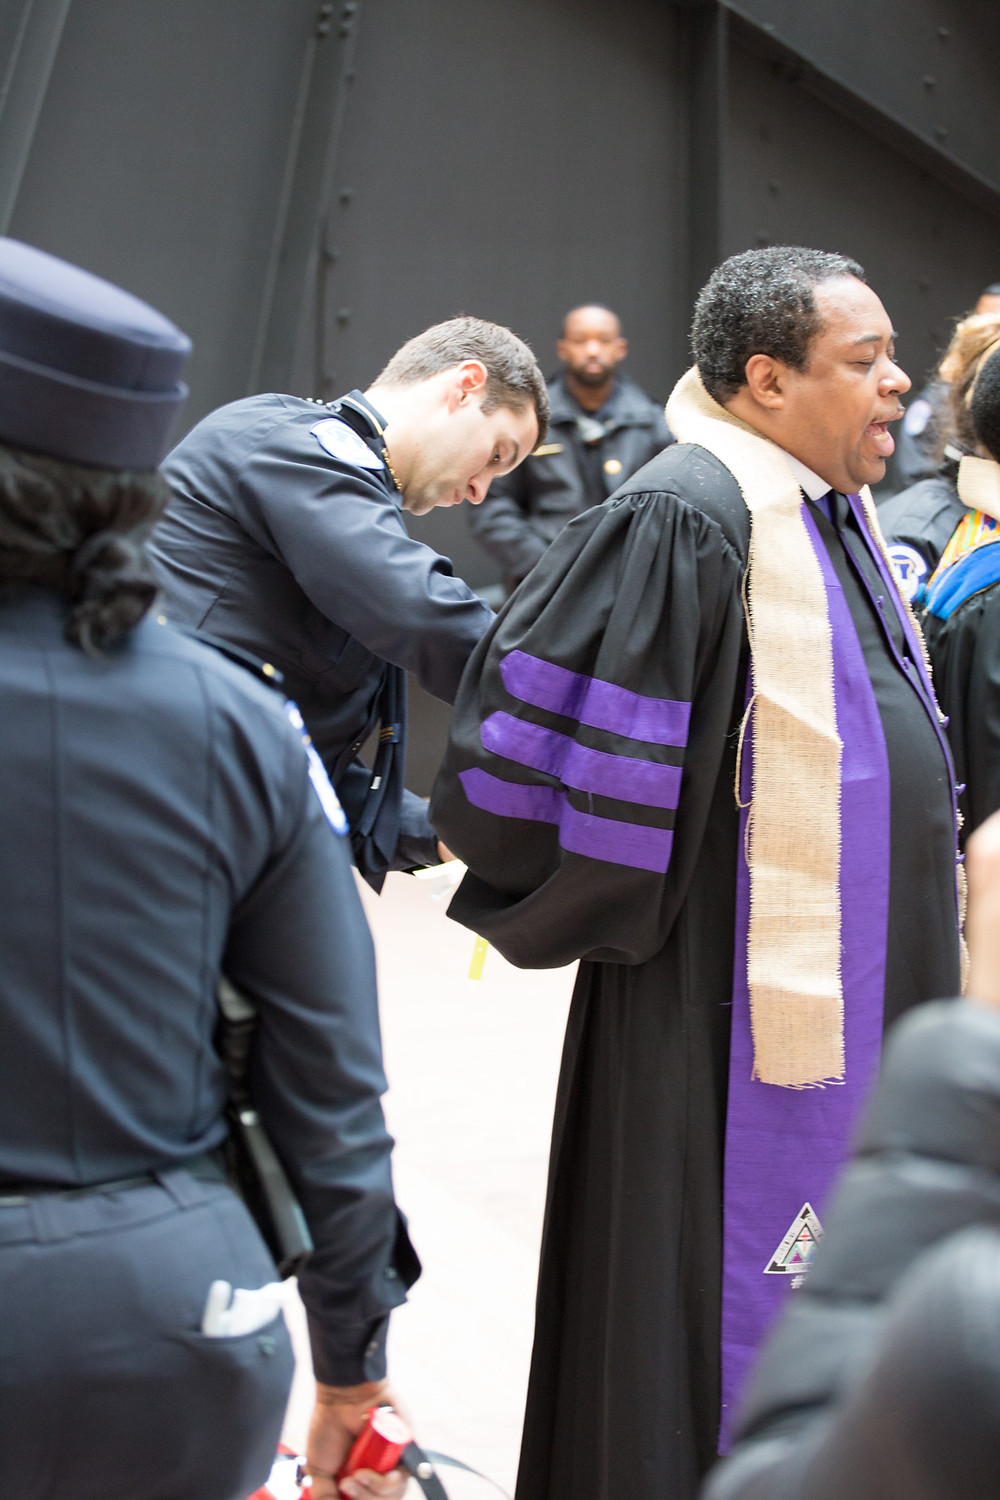 Bishop W. Darin Moore is arrested during the protest.